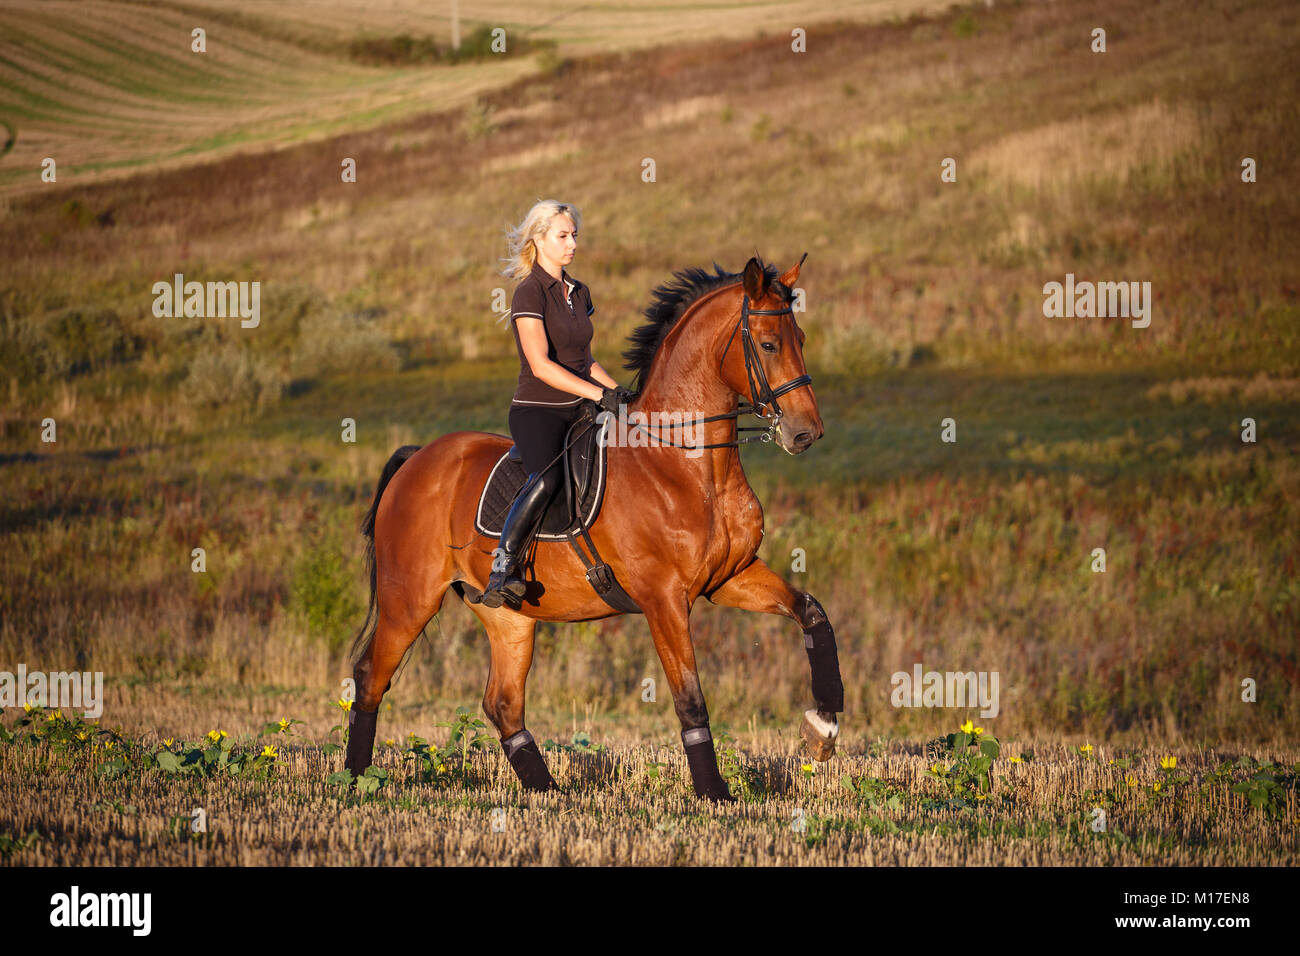 Young female rider on bay horse in field. eople and animals. Equestrian. Stock Photo